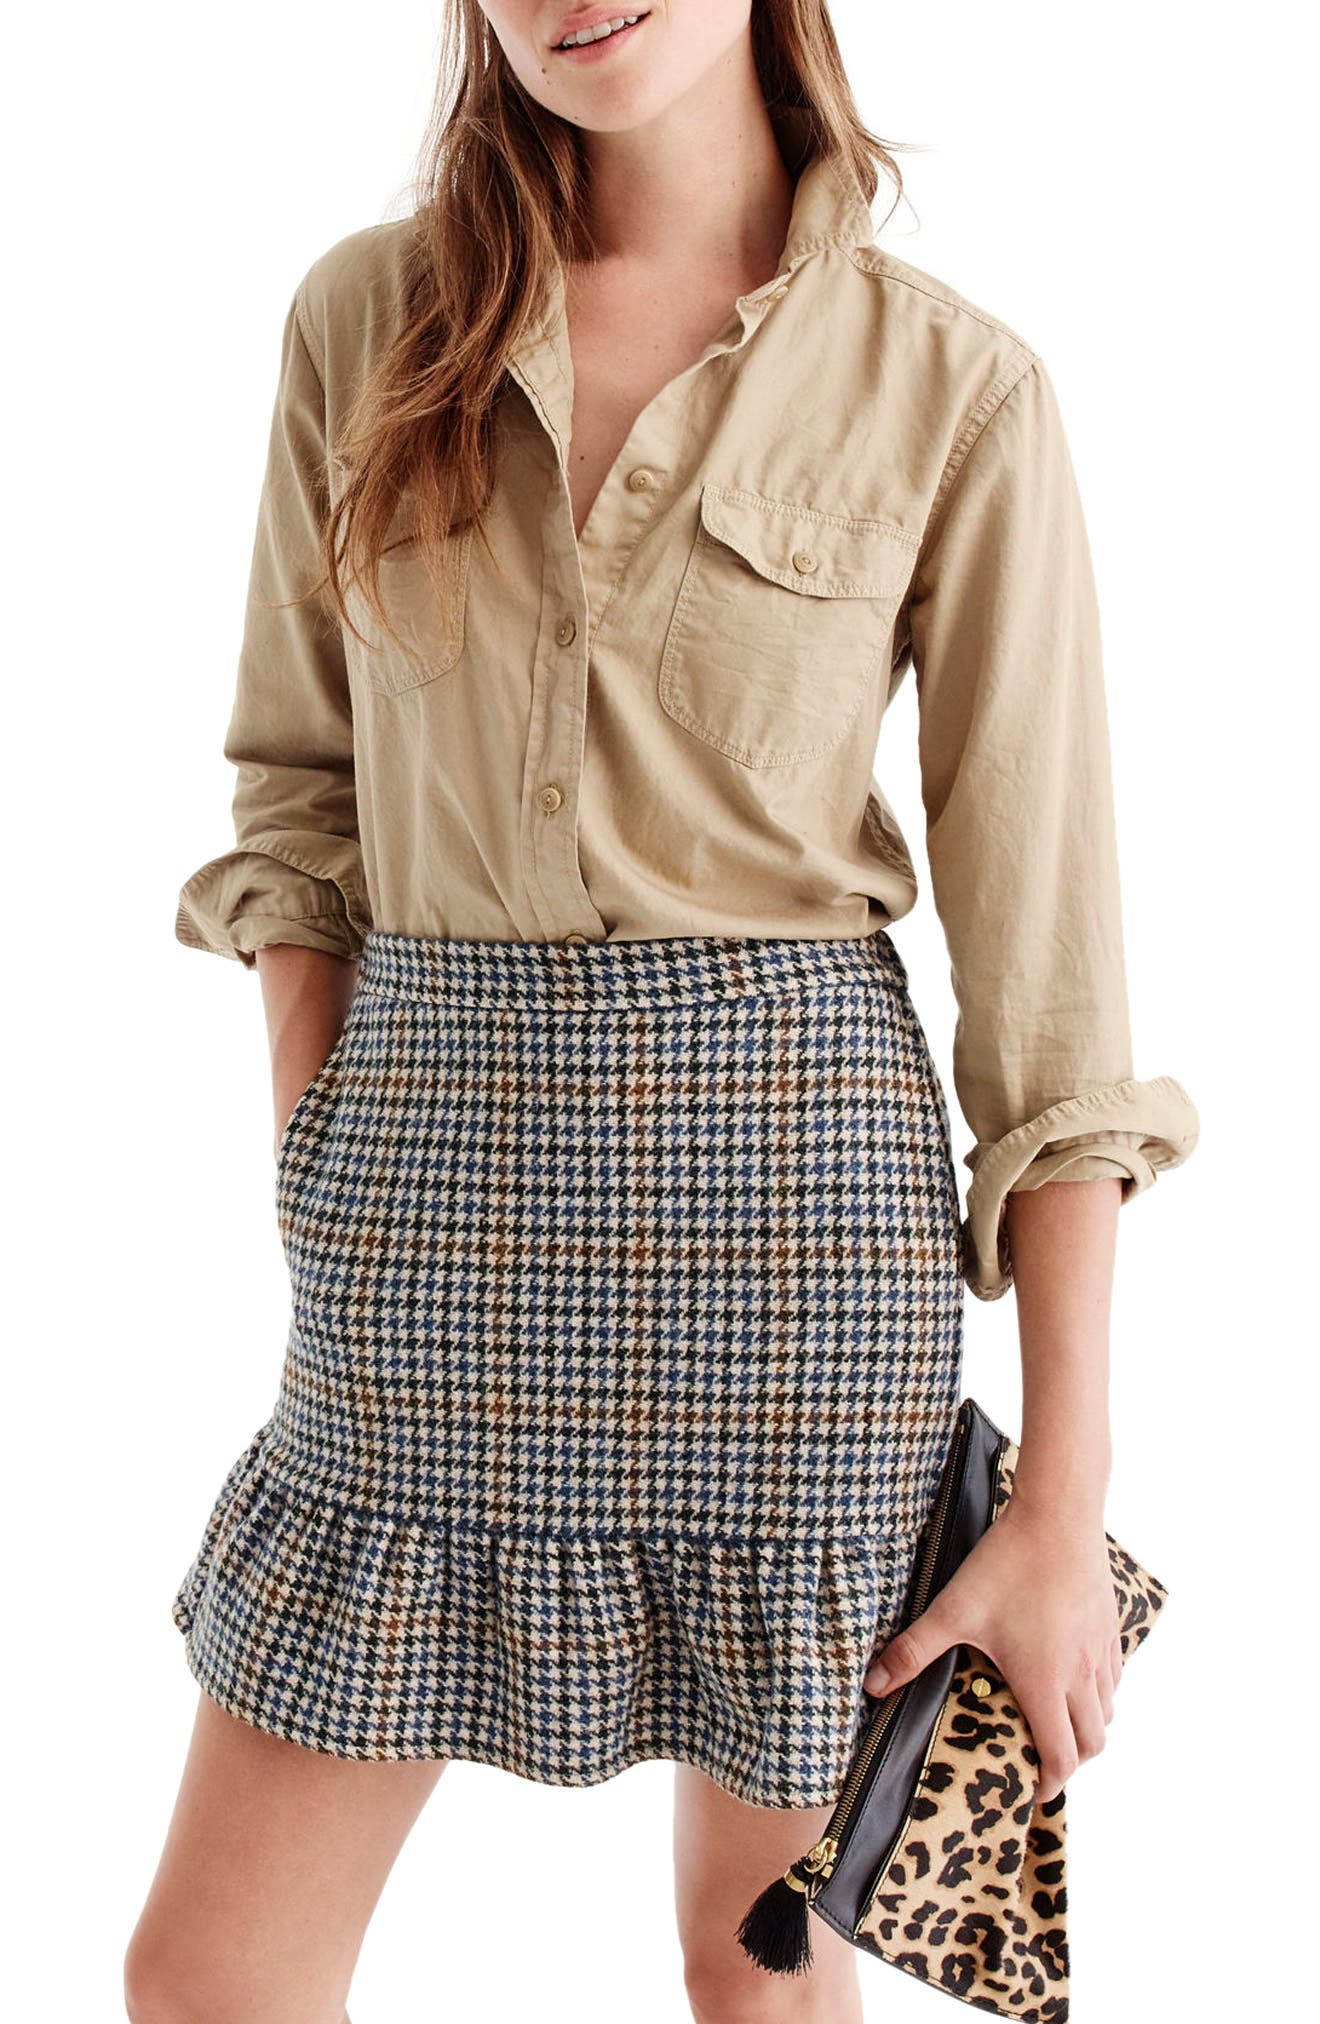 Alternate Image 1 Selected - J.Crew Ruffle Houndstooth Miniskirt